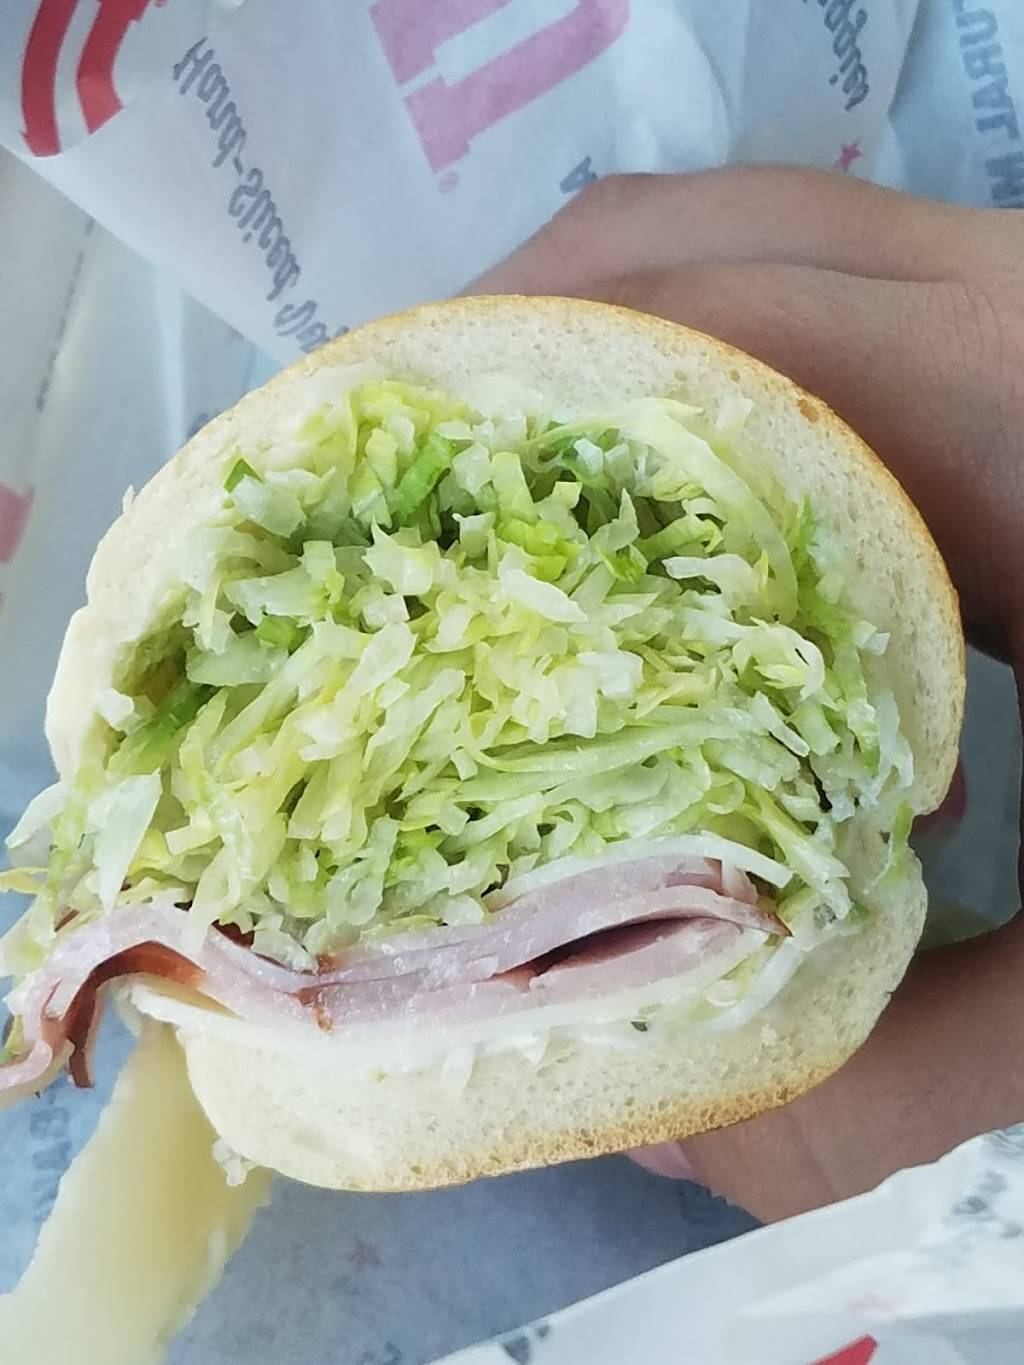 Jimmy Johns | meal delivery | 2801 Ogden Ave, Lisle, IL 60532, USA | 6303574444 OR +1 630-357-4444